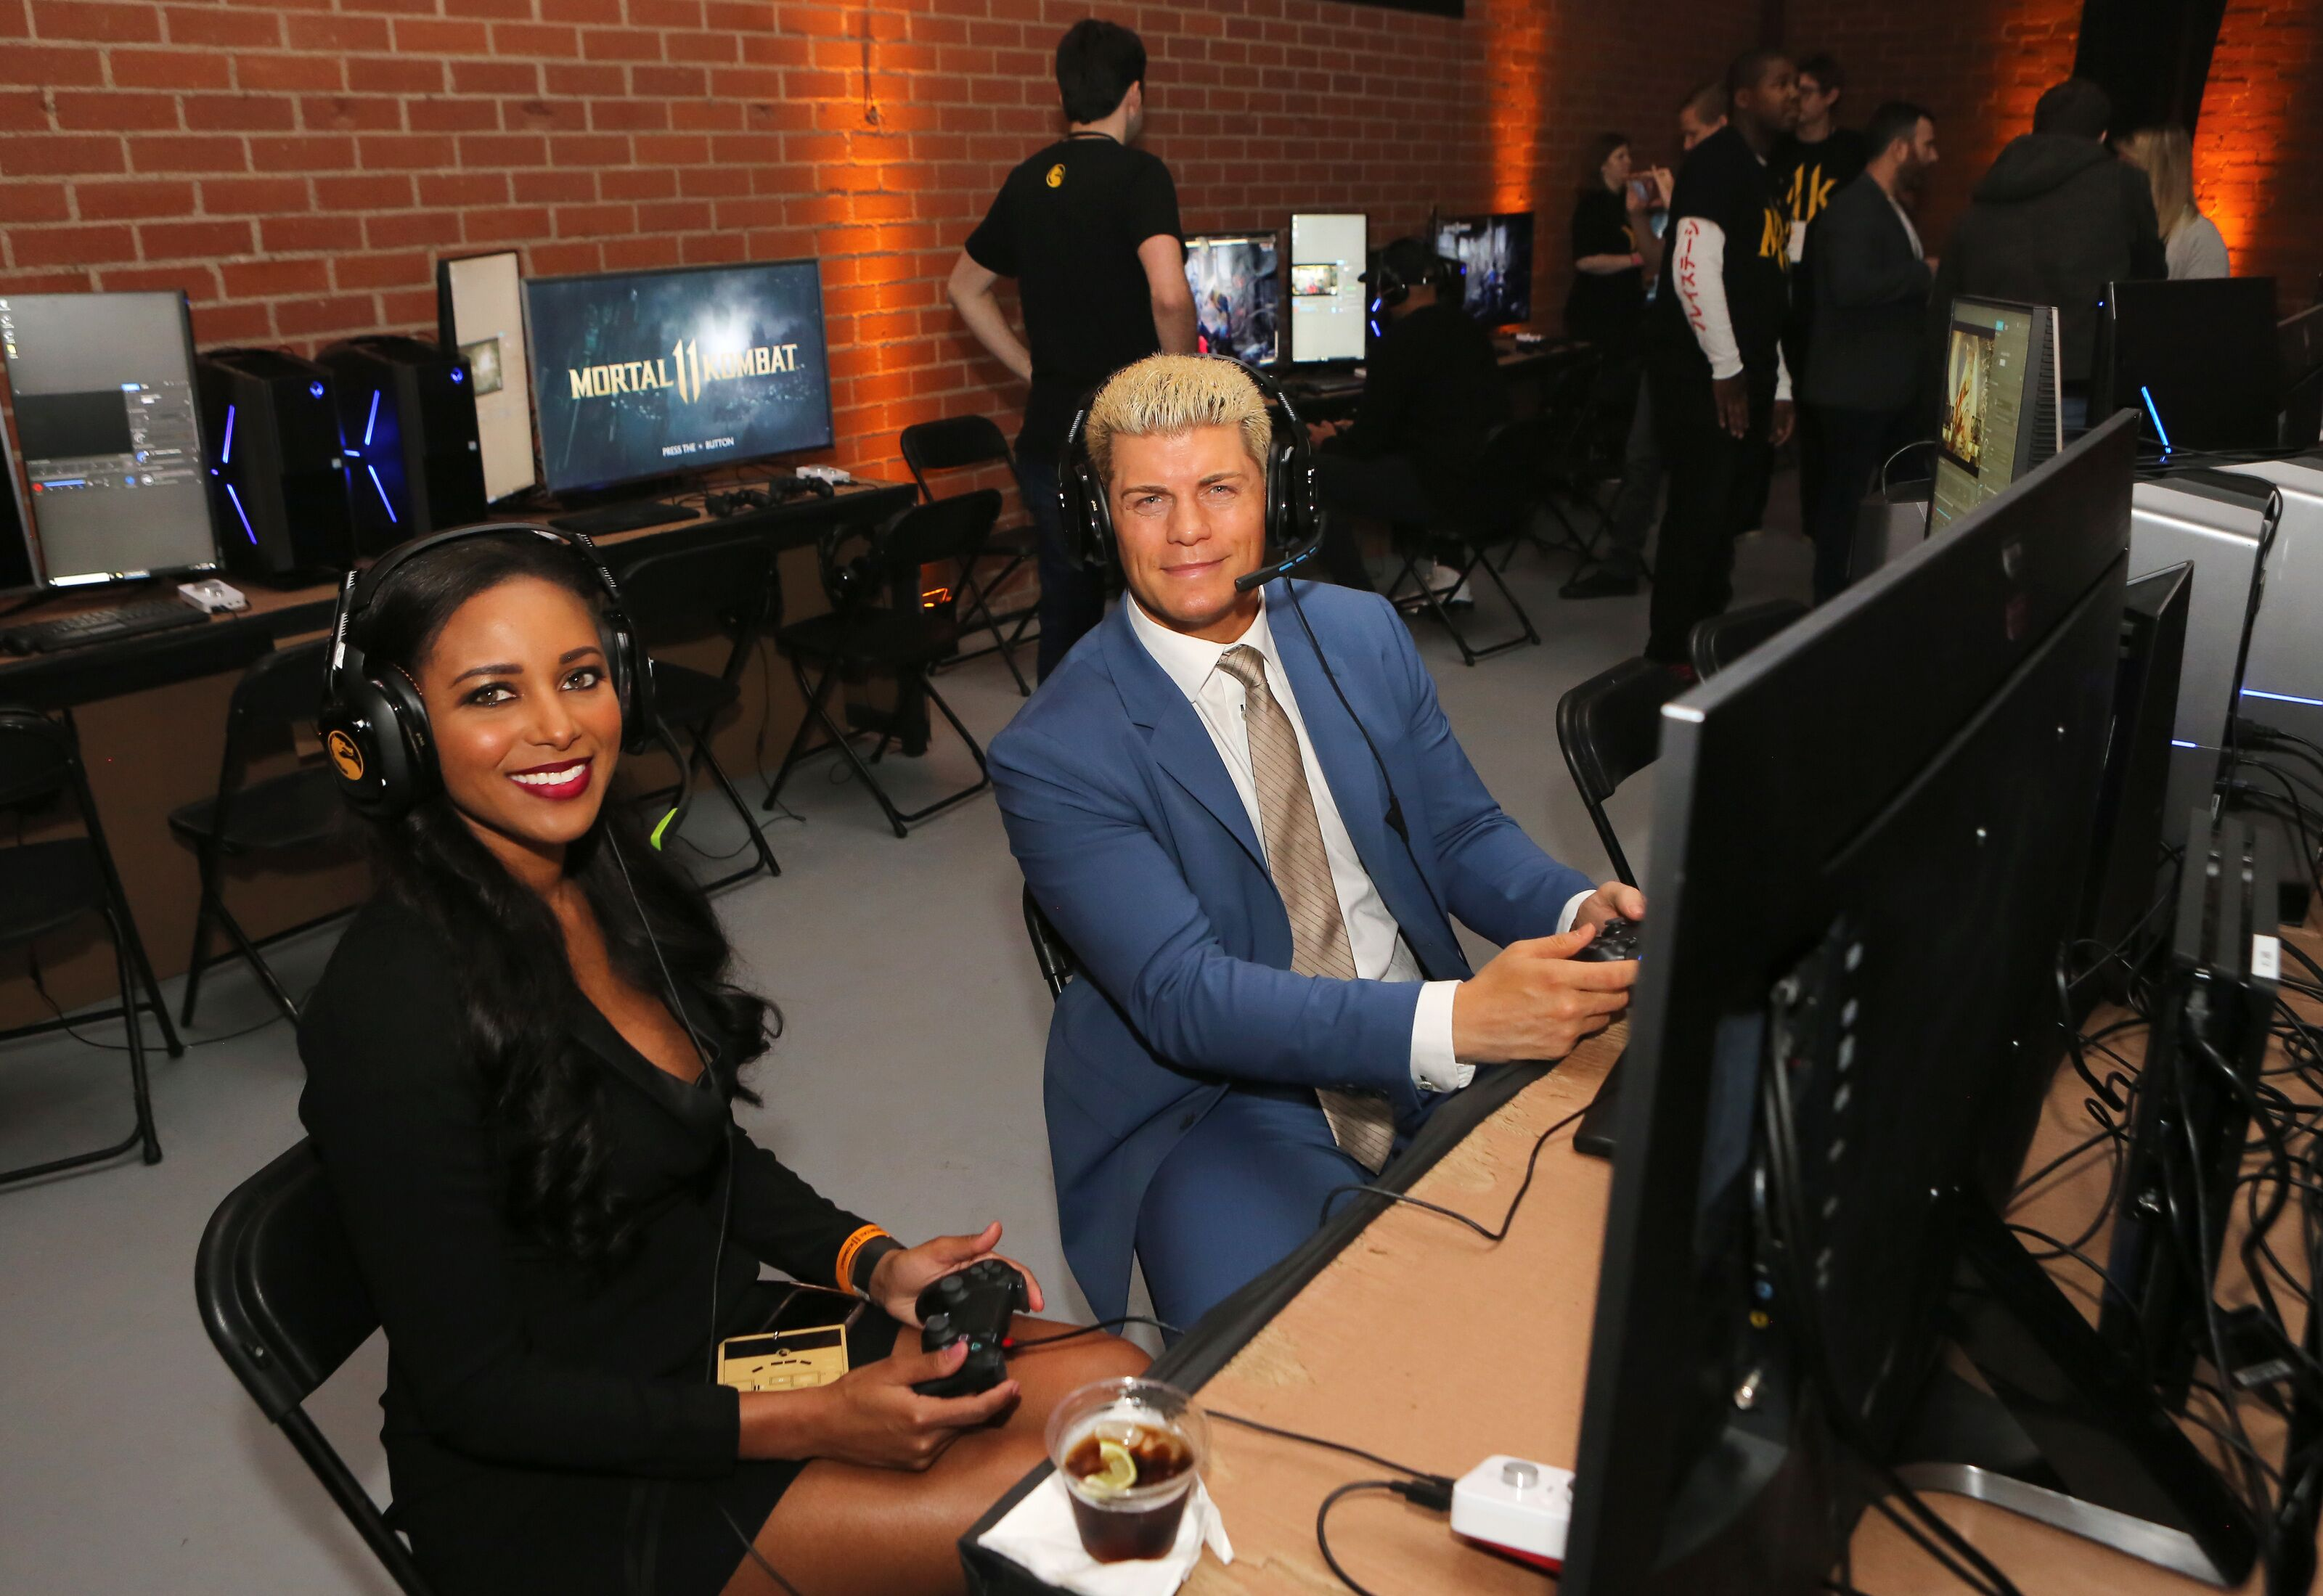 AEW: Cody Rhodes Puts Focus on Fans, Talent And Not TV Deal